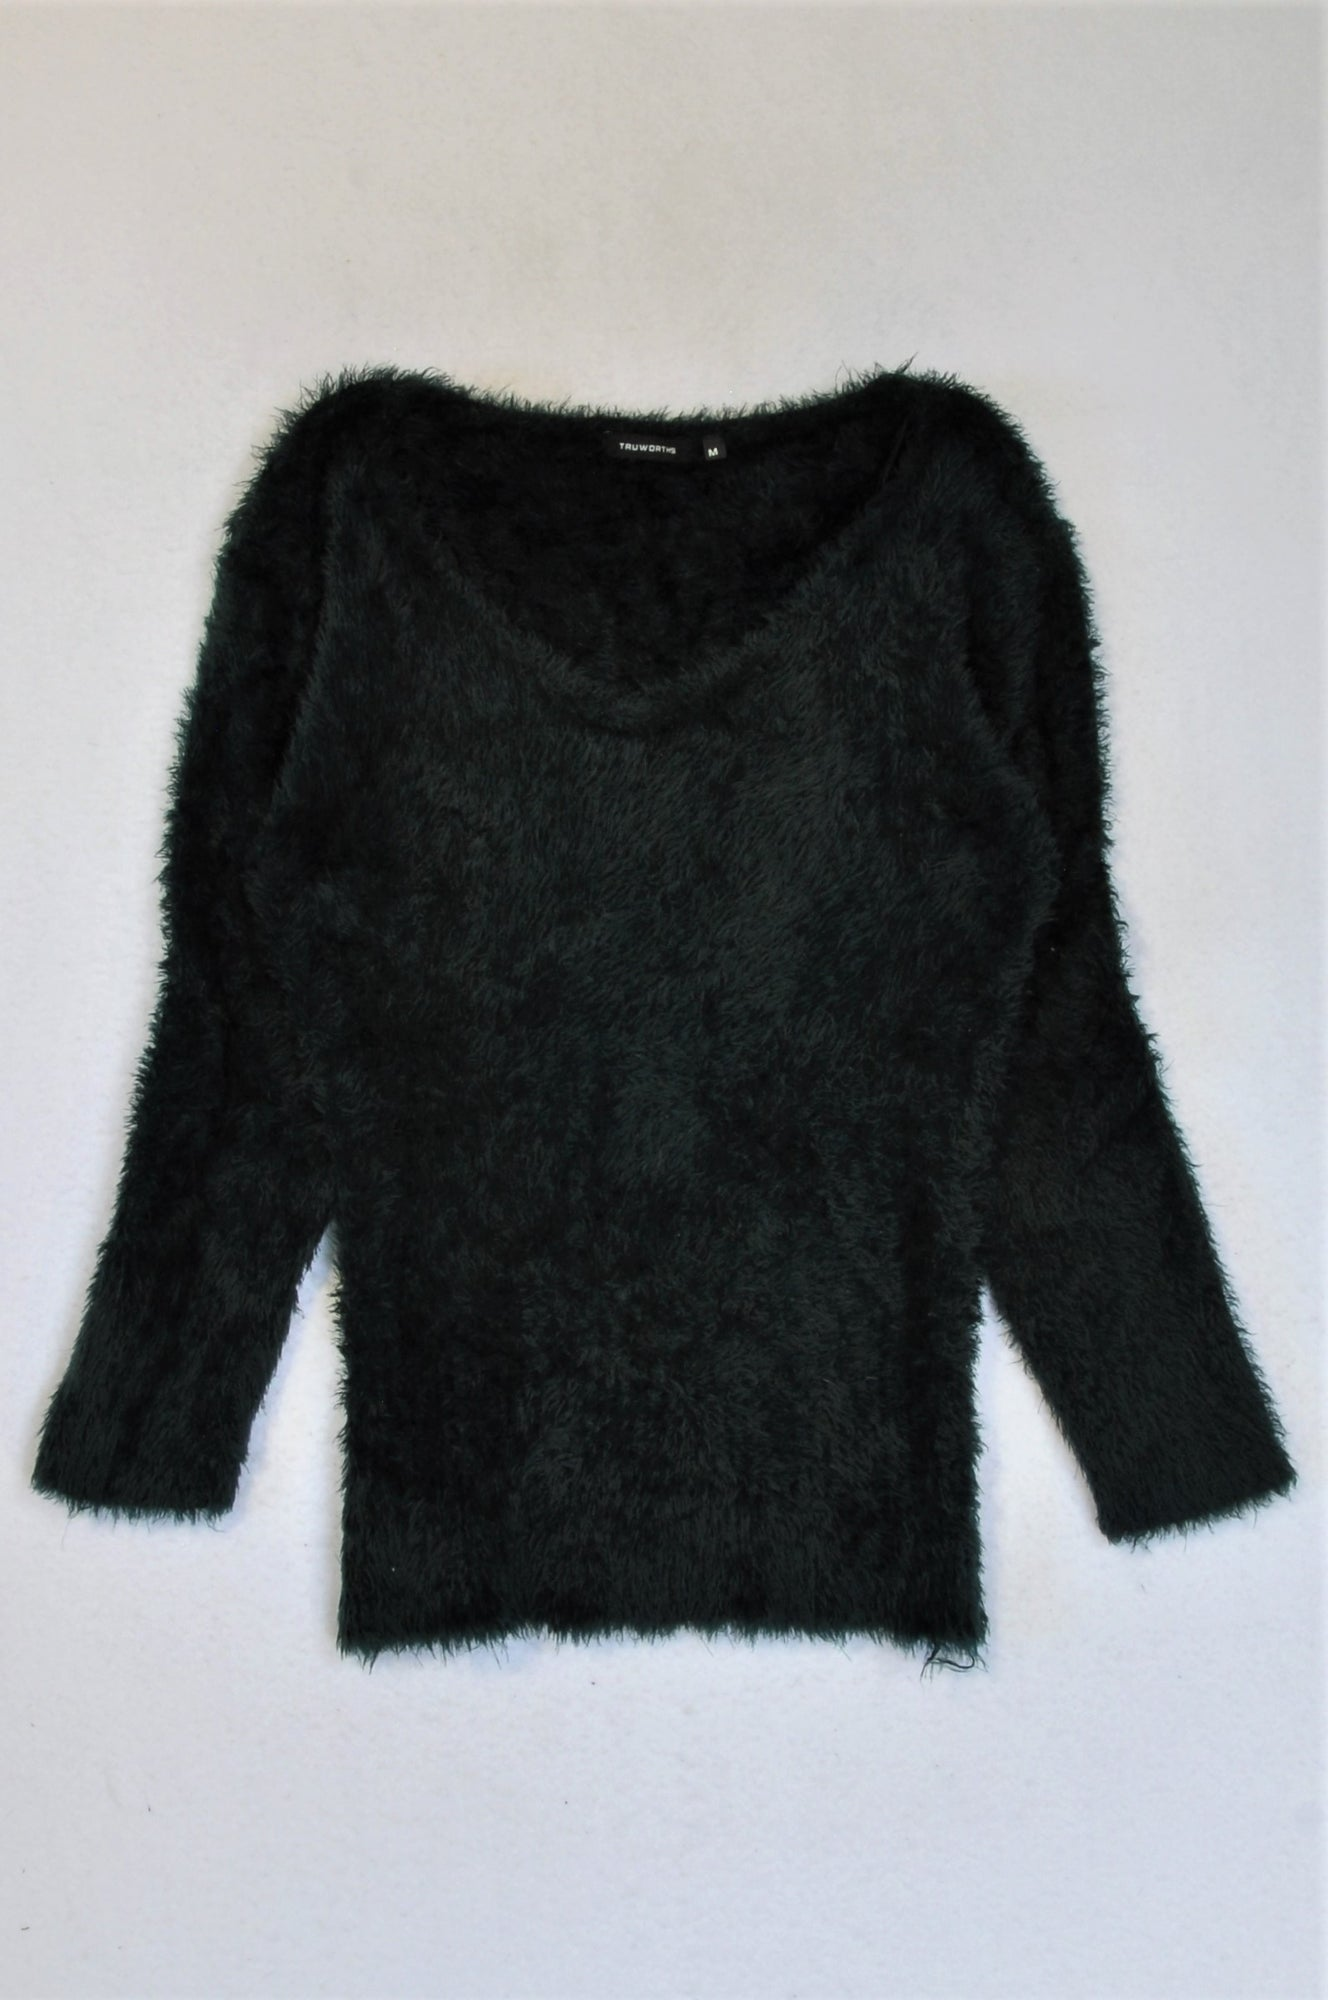 Truworths Black Fluffy Top Women Size S